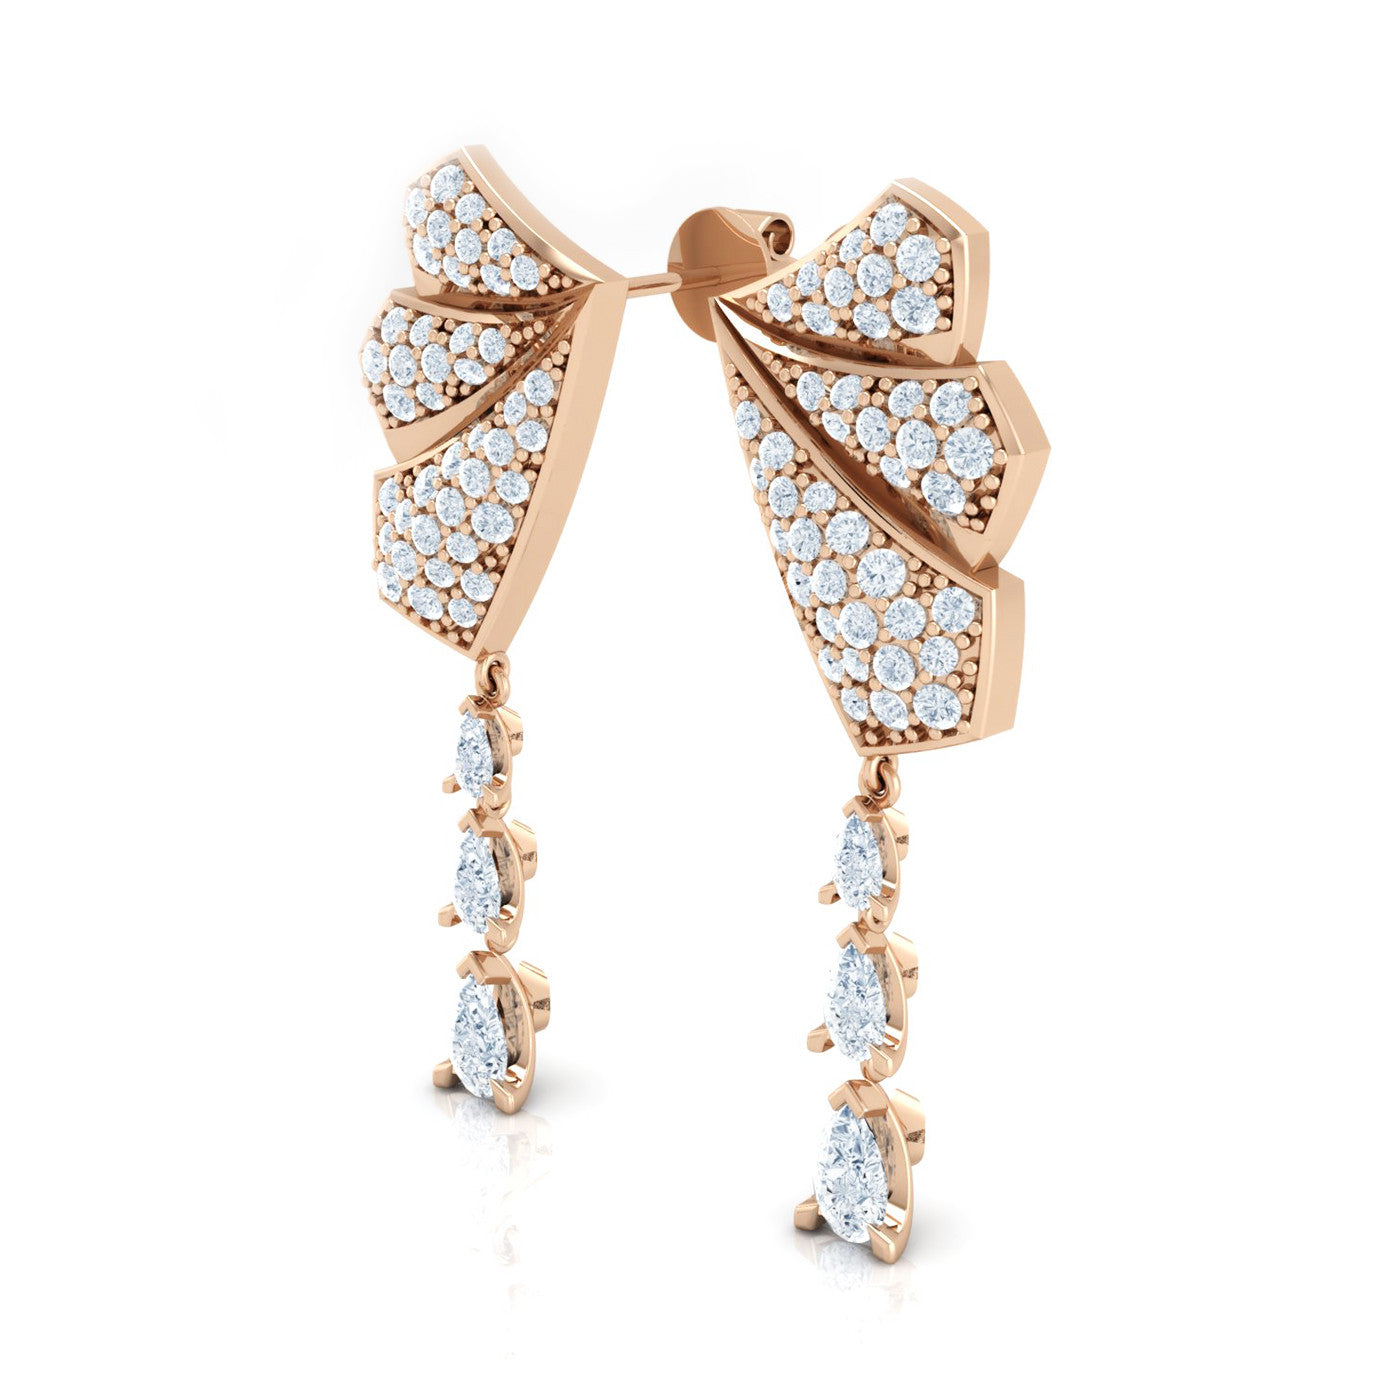 18kt Gold Diamond Drop Earrings